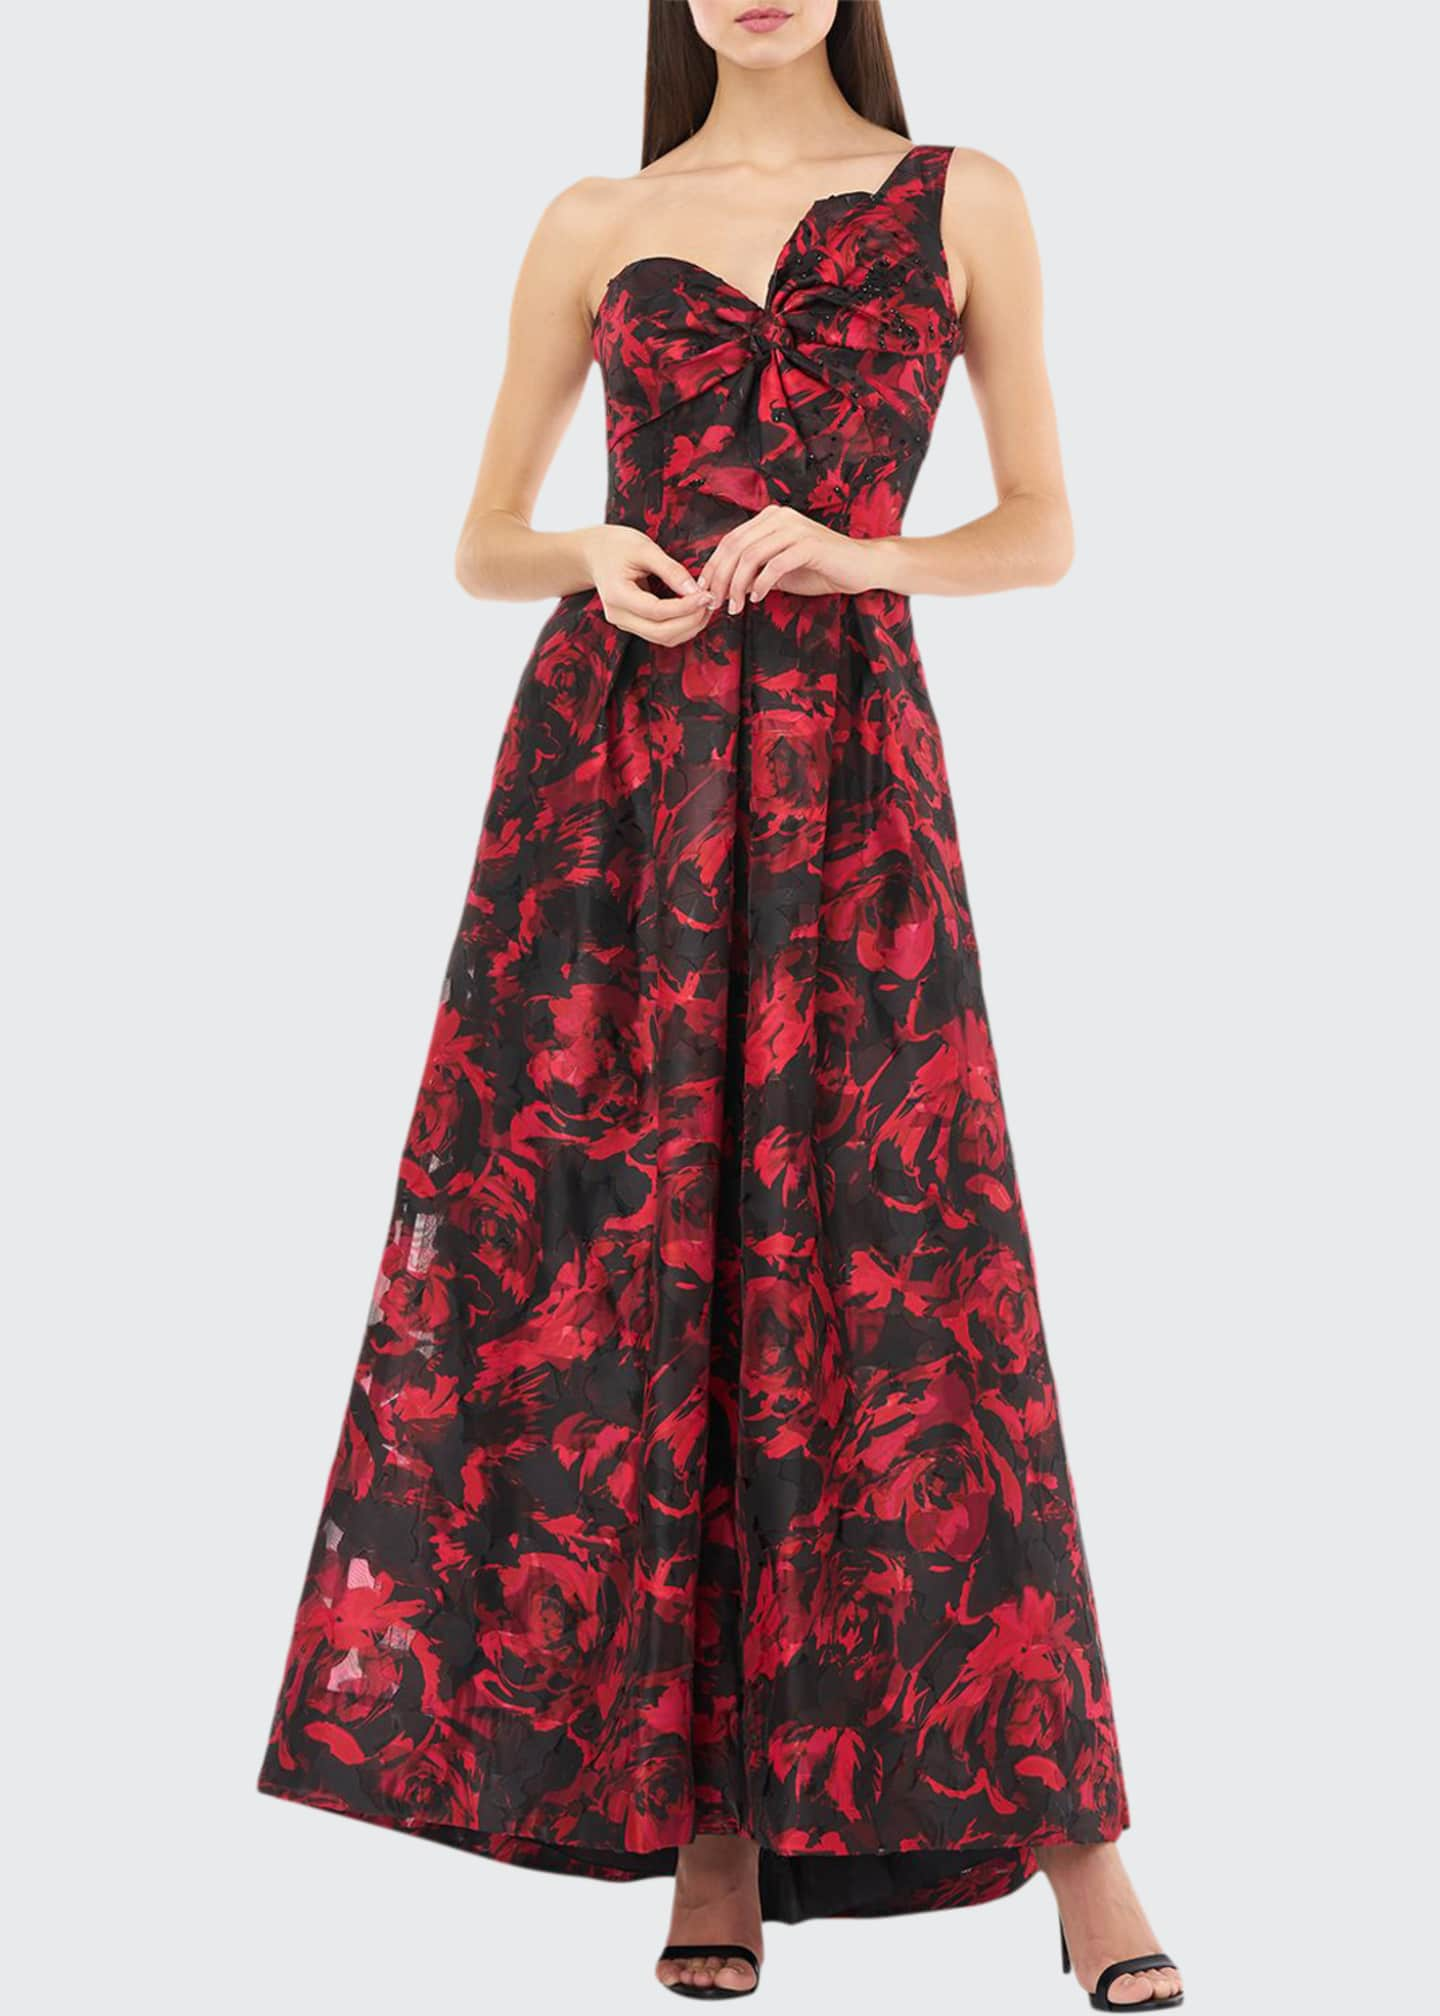 Carmen Marc Valvo Infusion Sweetheart One-Shoulder Printed Gown